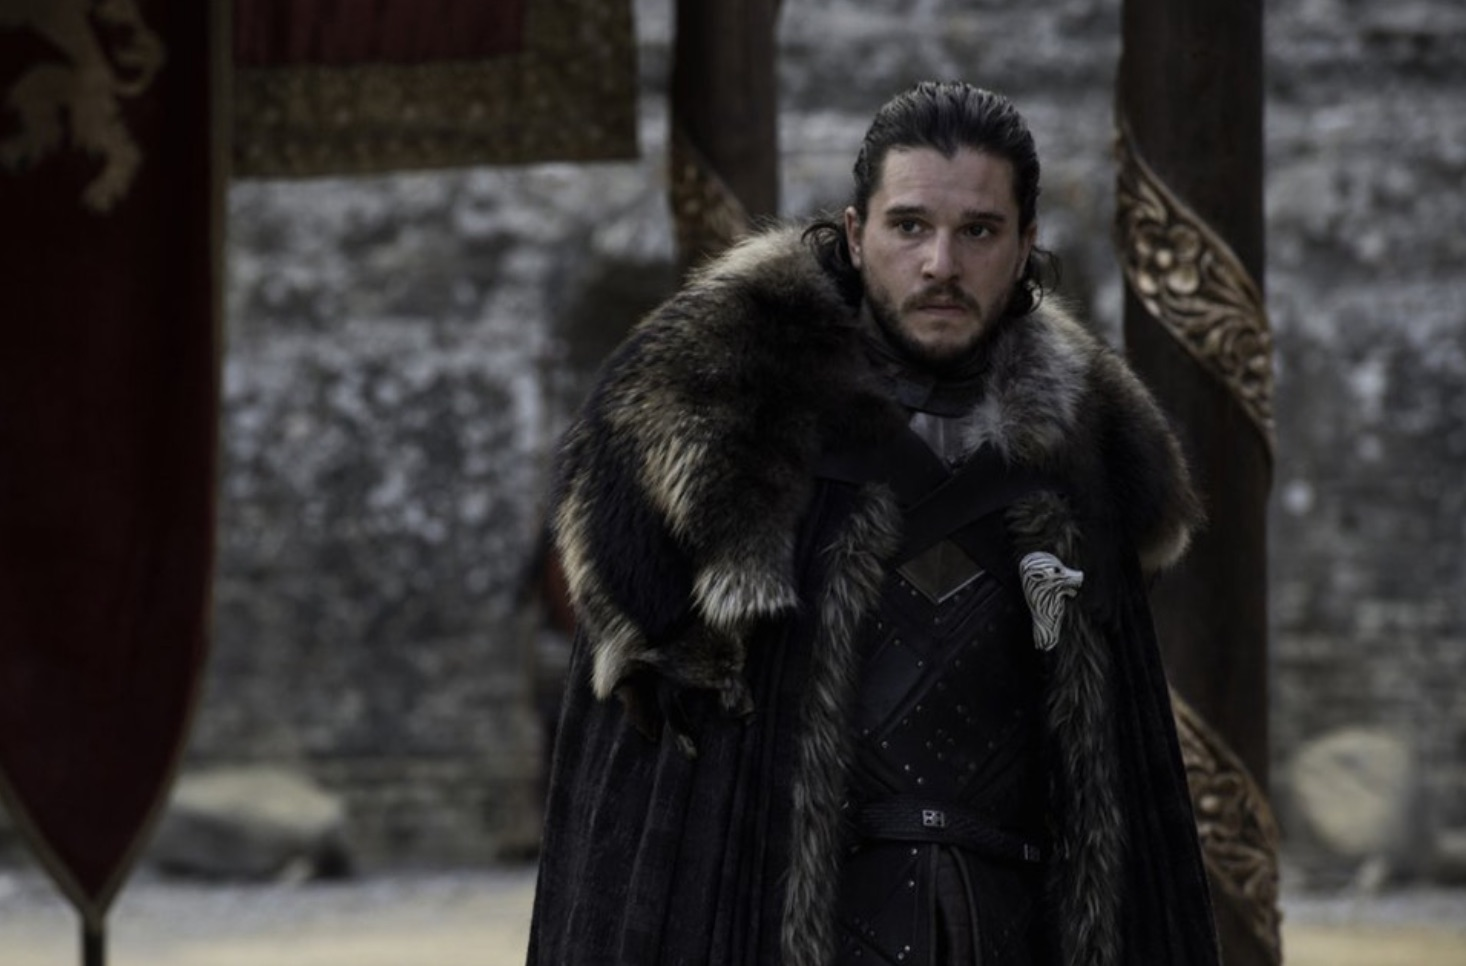 Jon Snow's Dad Looks Just Like This Other Game of Thrones Character